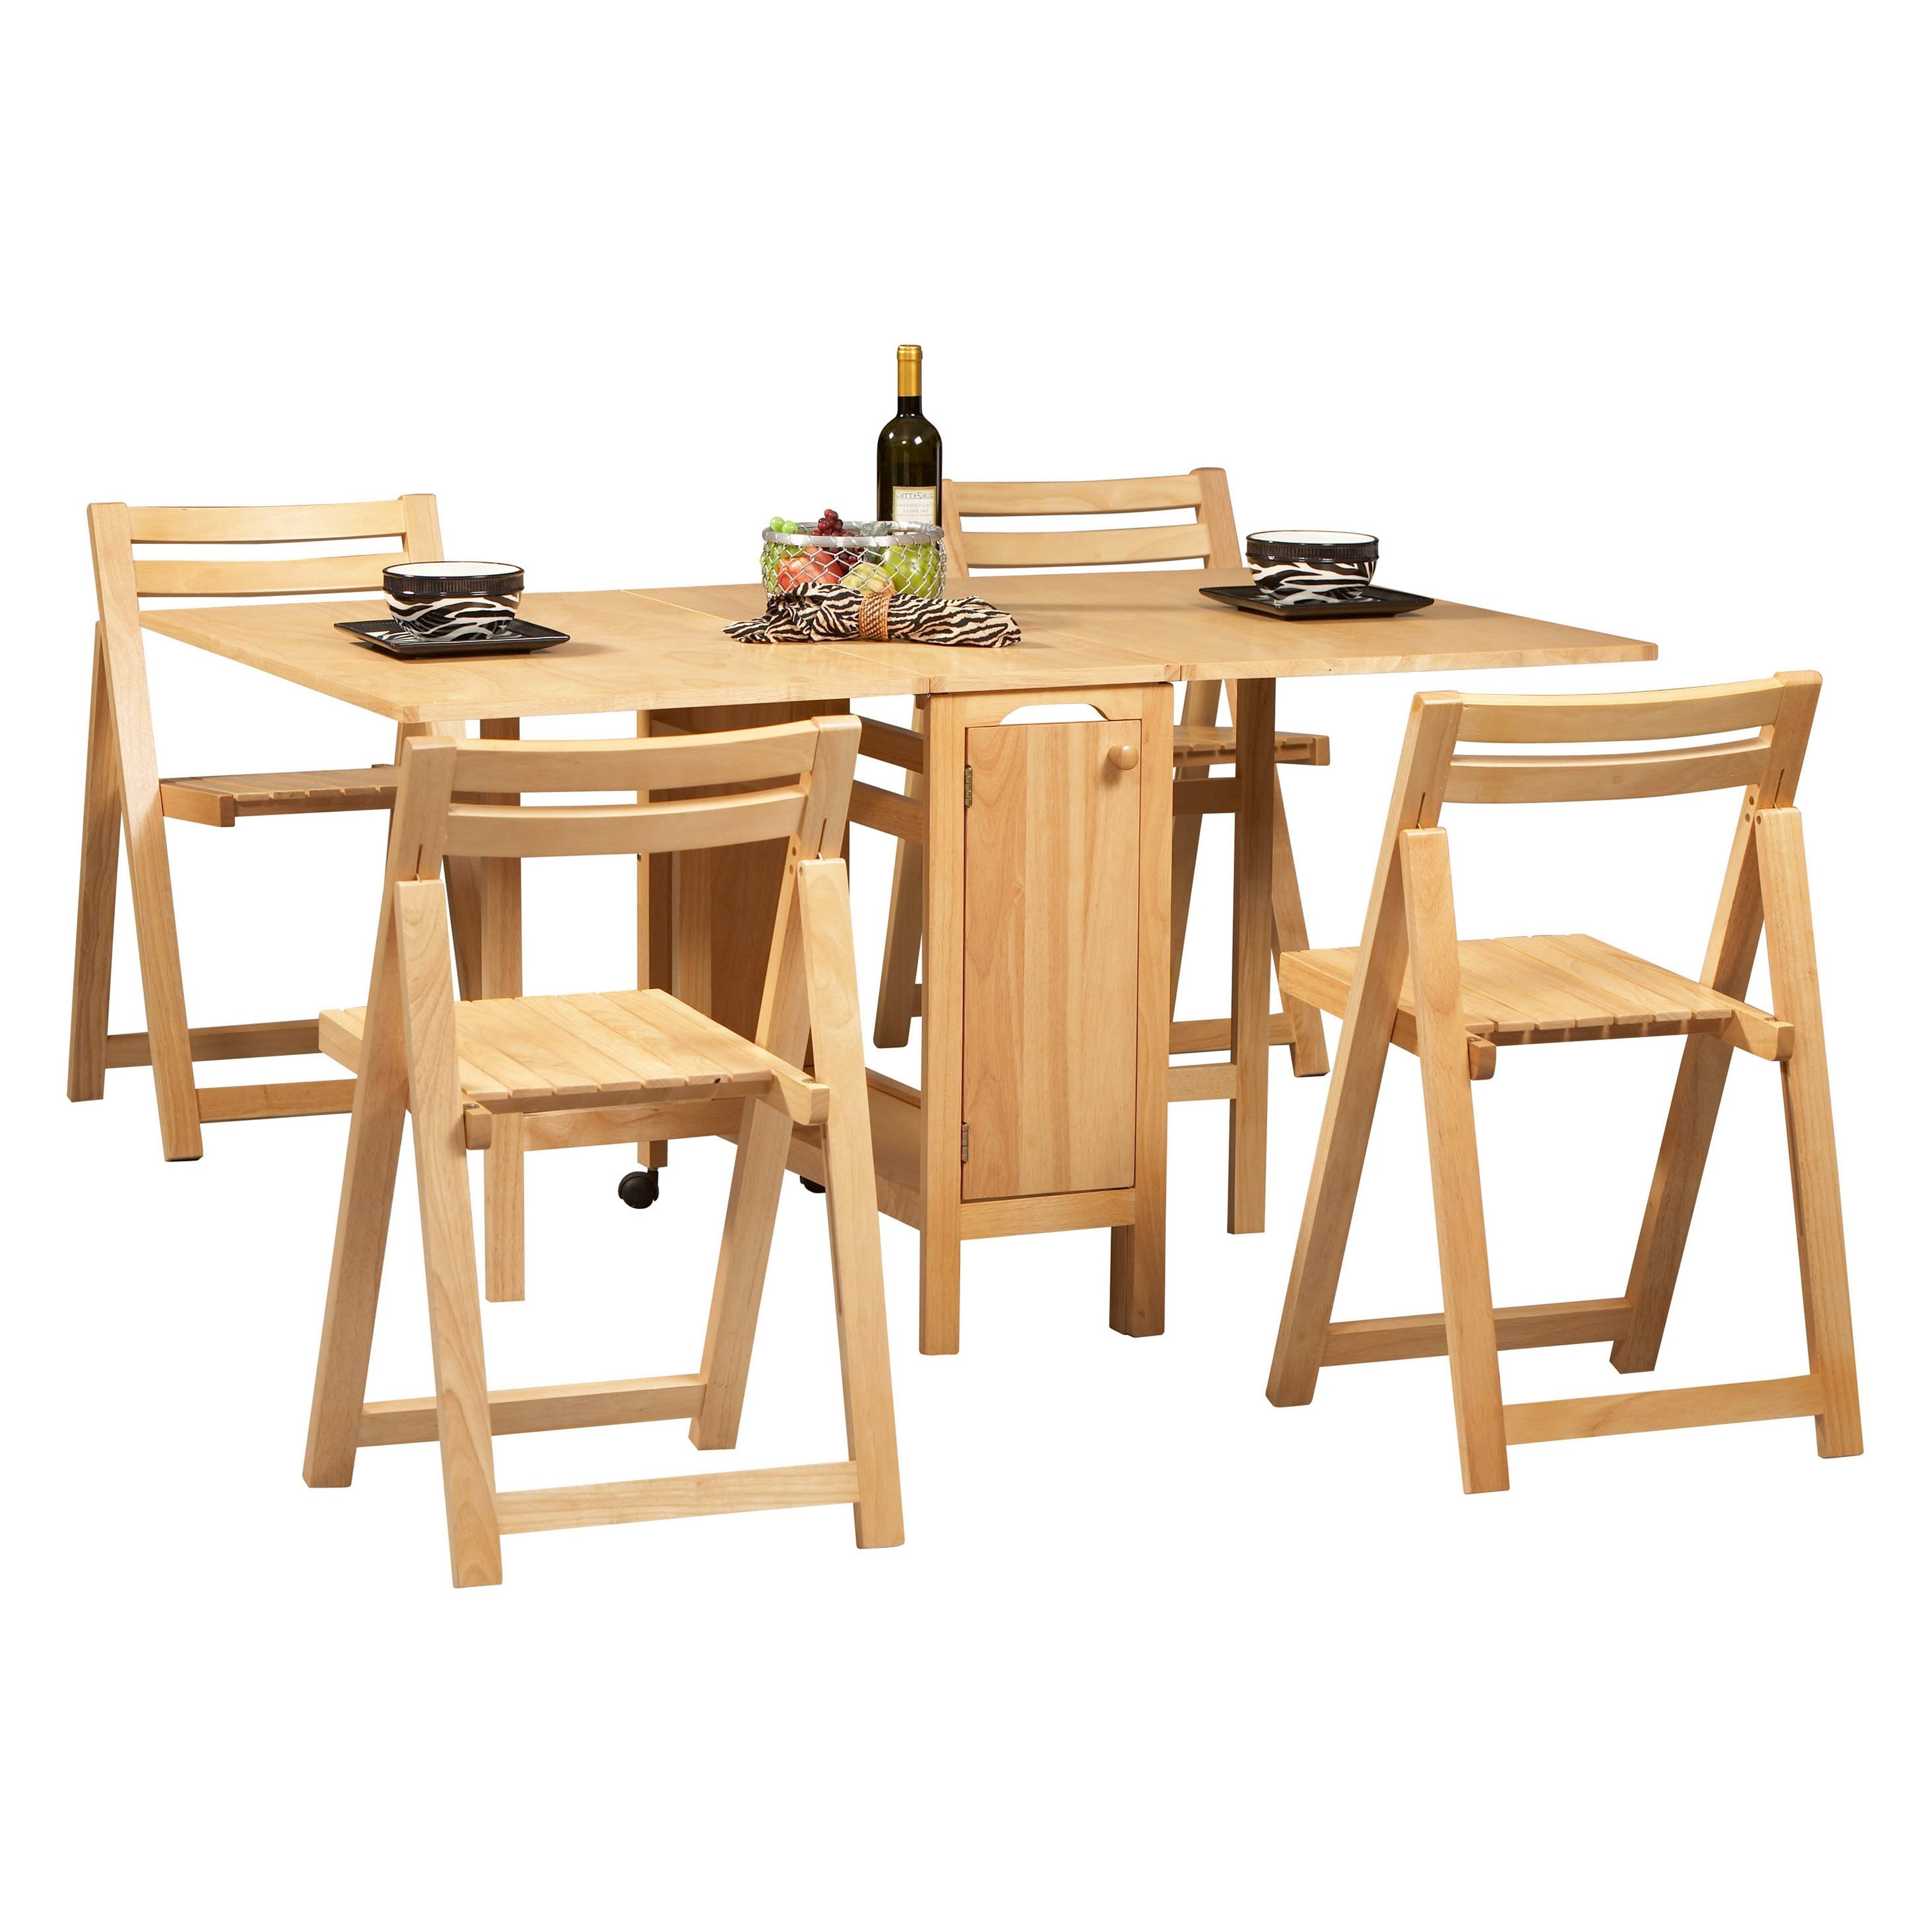 Folding Dining Table Sets – Castrophotos Intended For Well Known Wood Folding Dining Tables (View 11 of 25)